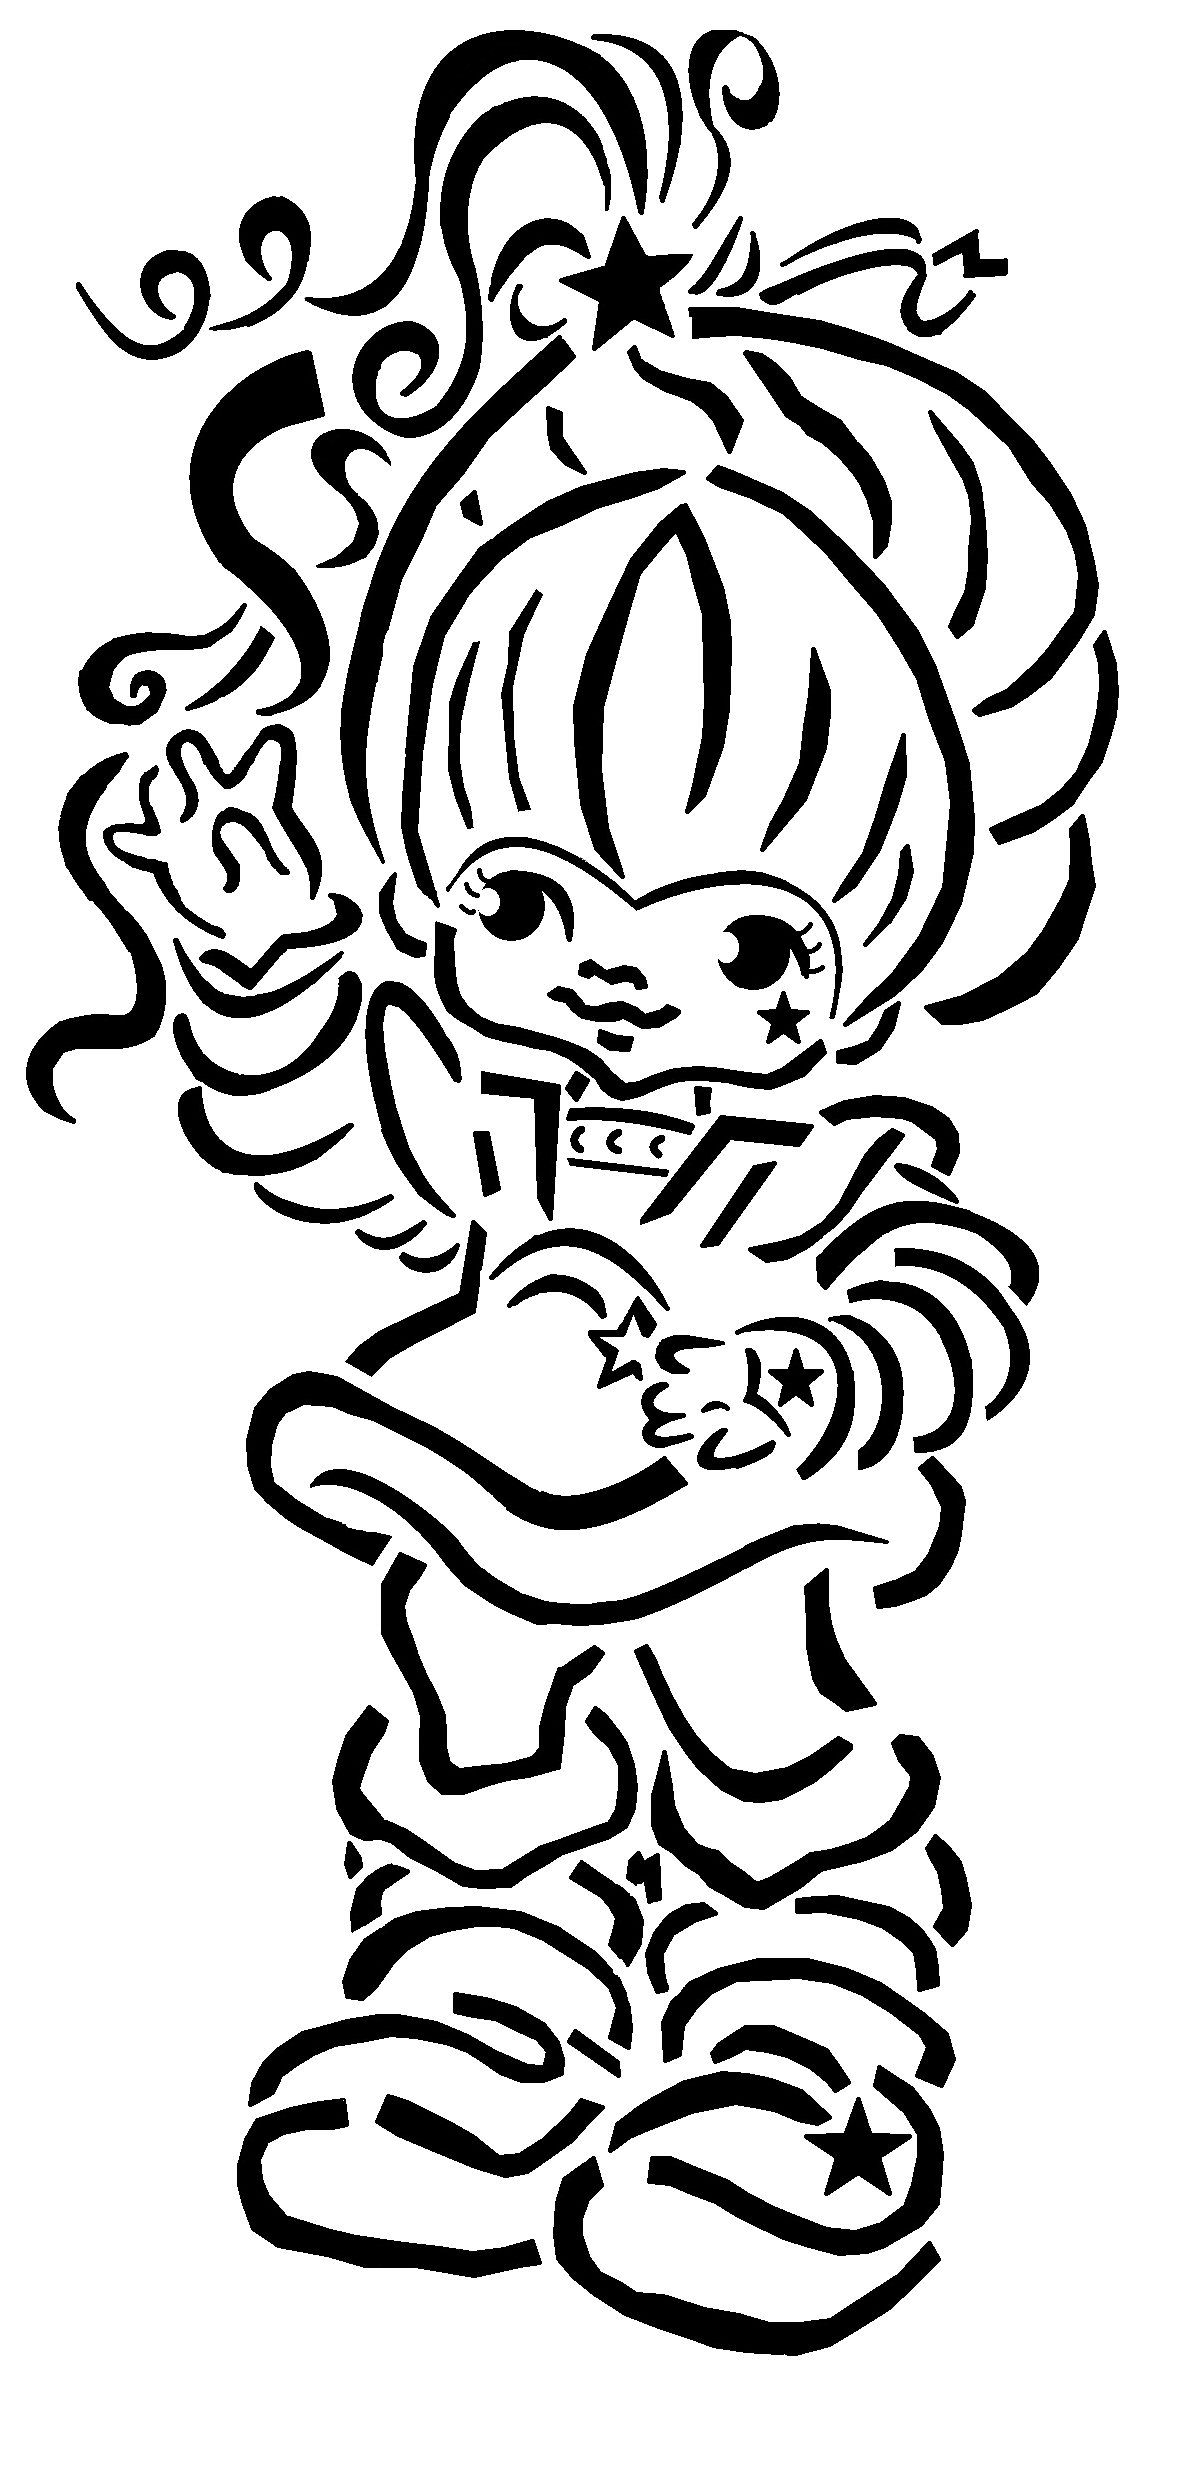 Just In Case Anybody Wanted A Stencil Of Rainbow Brite And